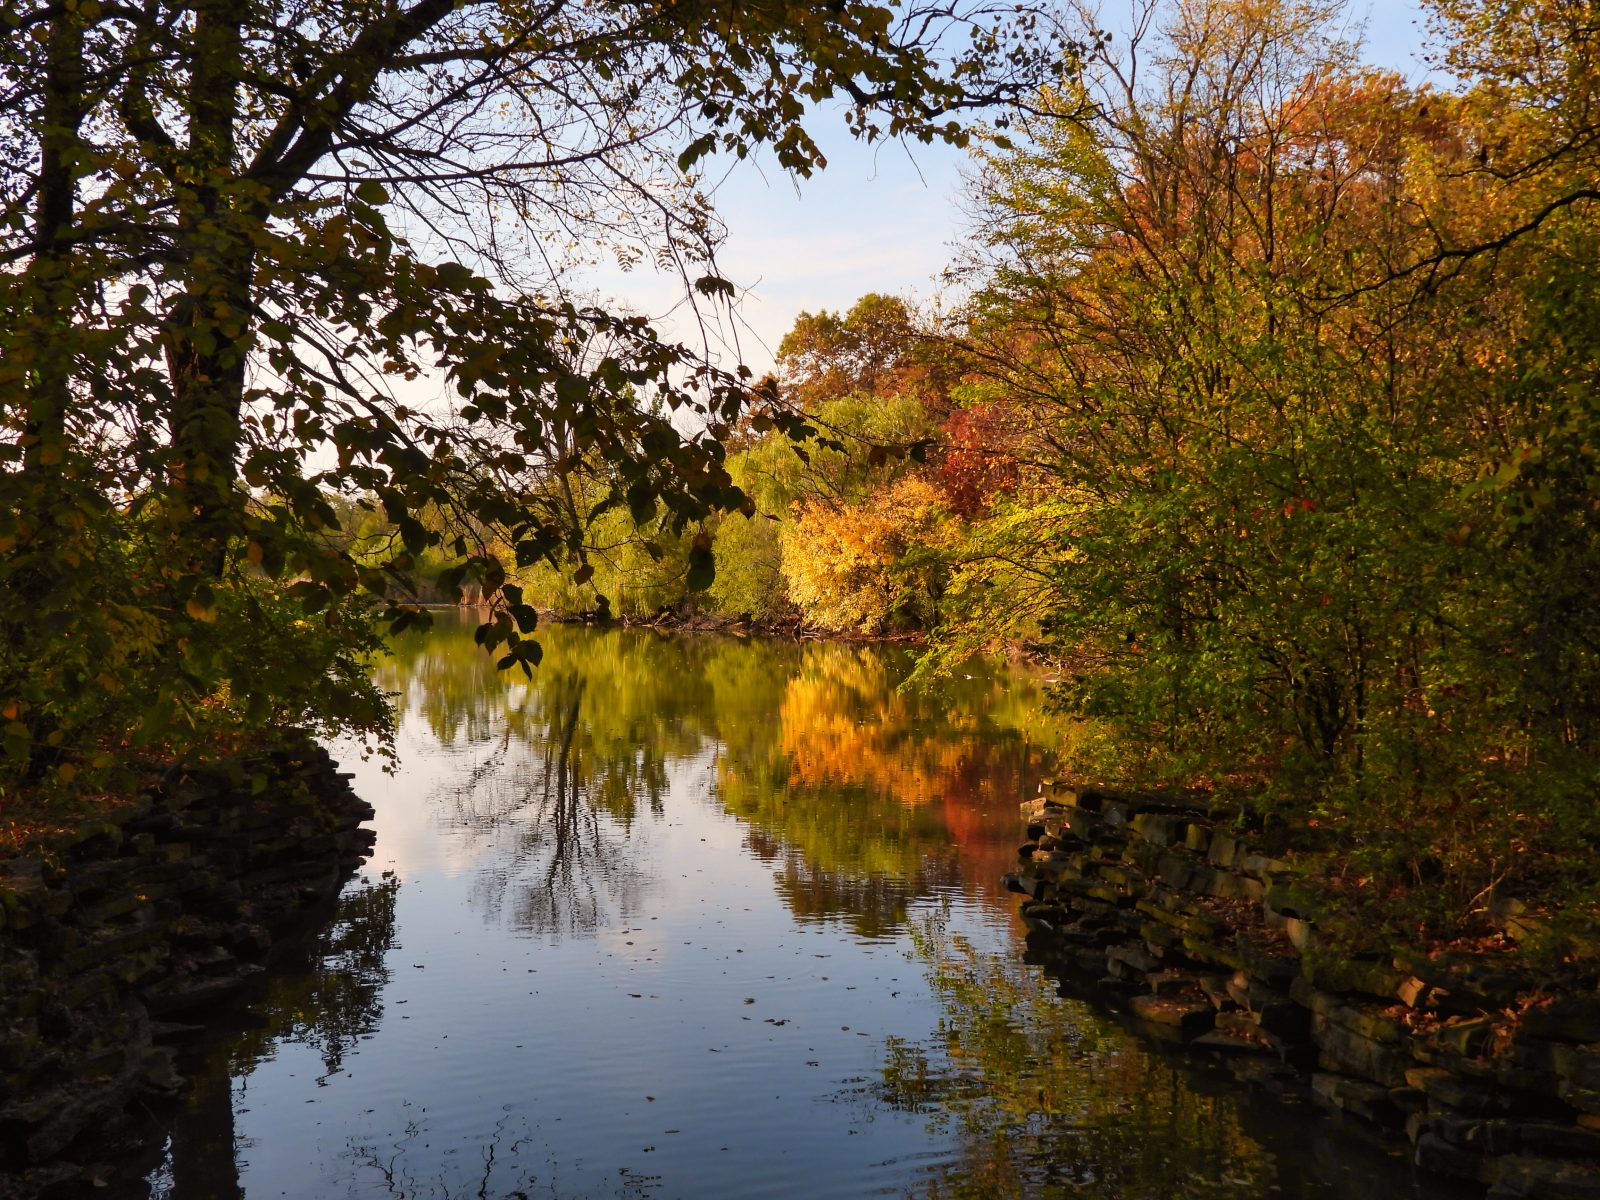 Looking Down River on Brisk October Day with Beautifully Colored Trees with Leaves in Orange, Yellow, Red and Green Reflected in Water with Bright Blue Sky in Background